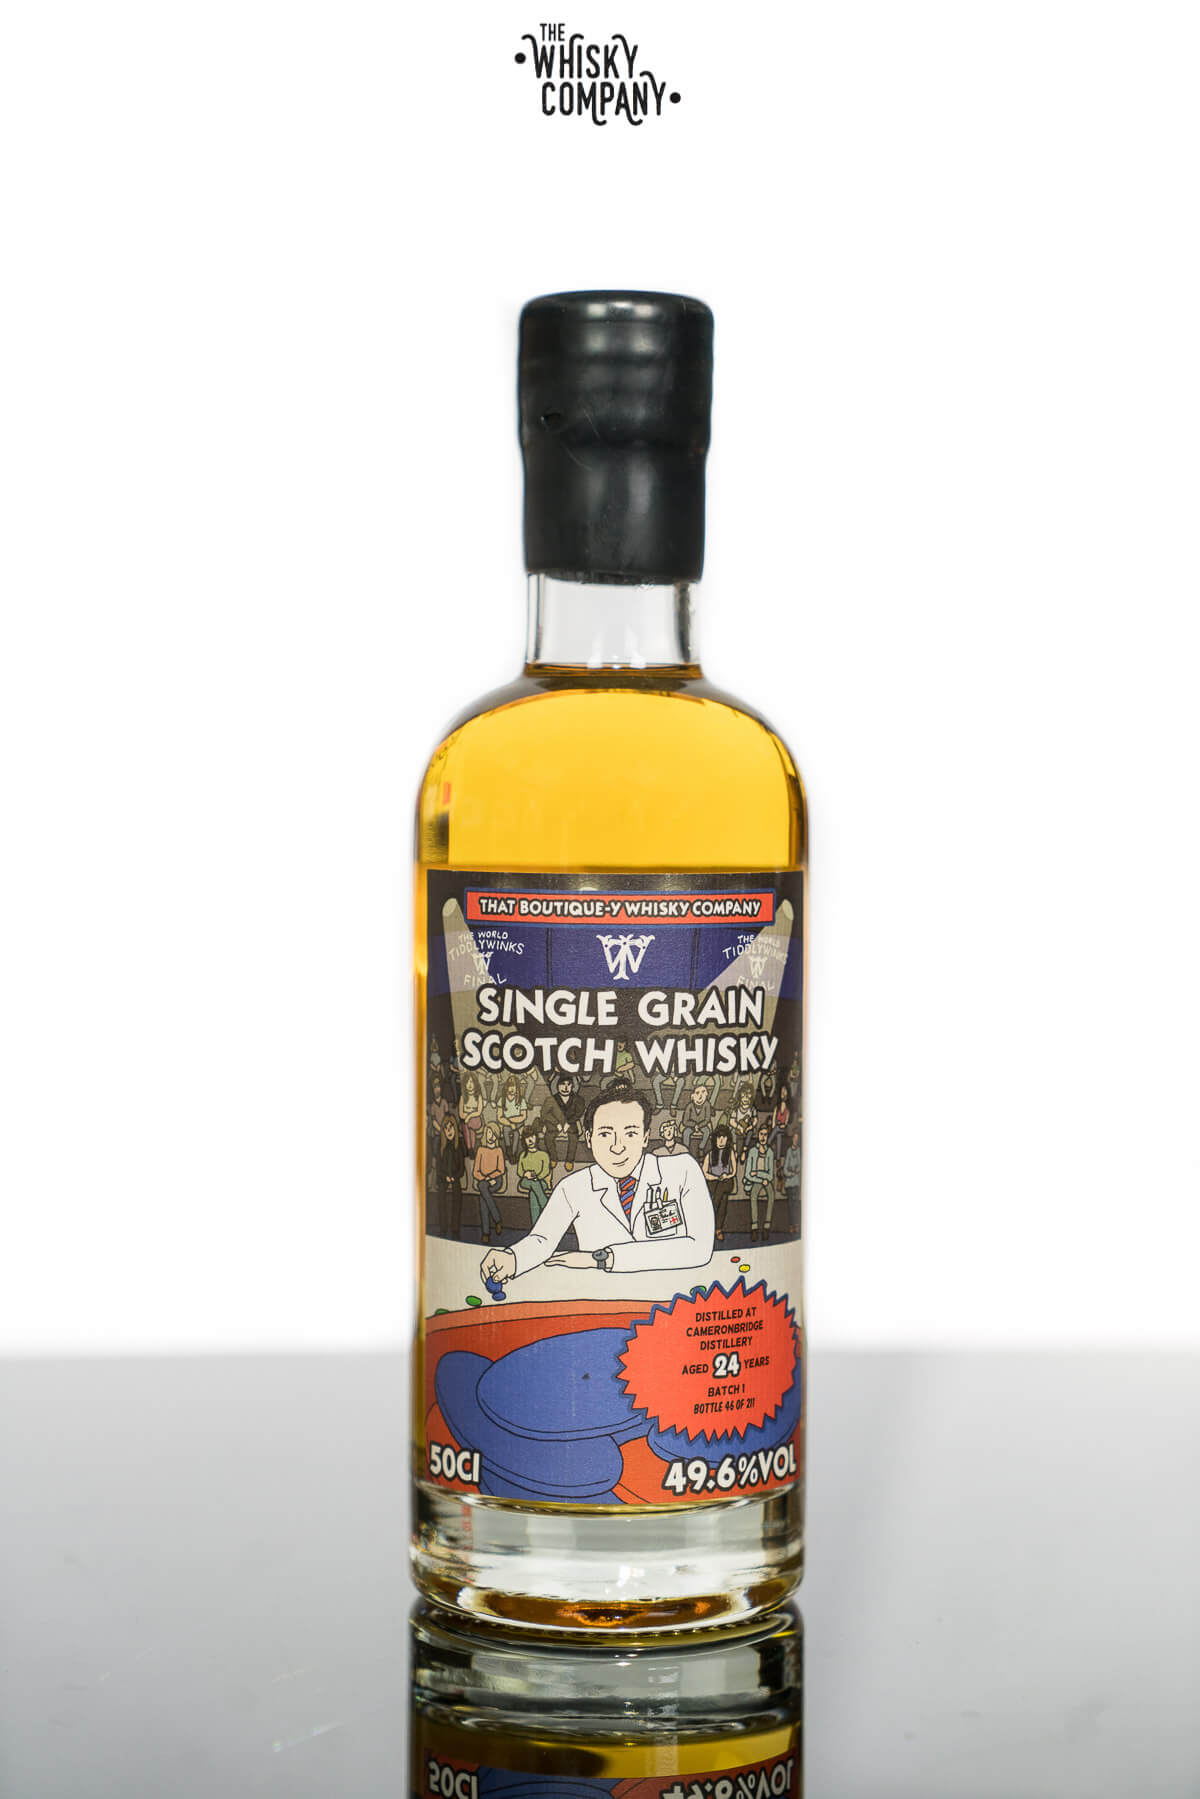 Cameronbridge Aged 24 Years Single Grain Scotch Whisky Batch 1 - That Boutique-Y Whisky Company (500ml)